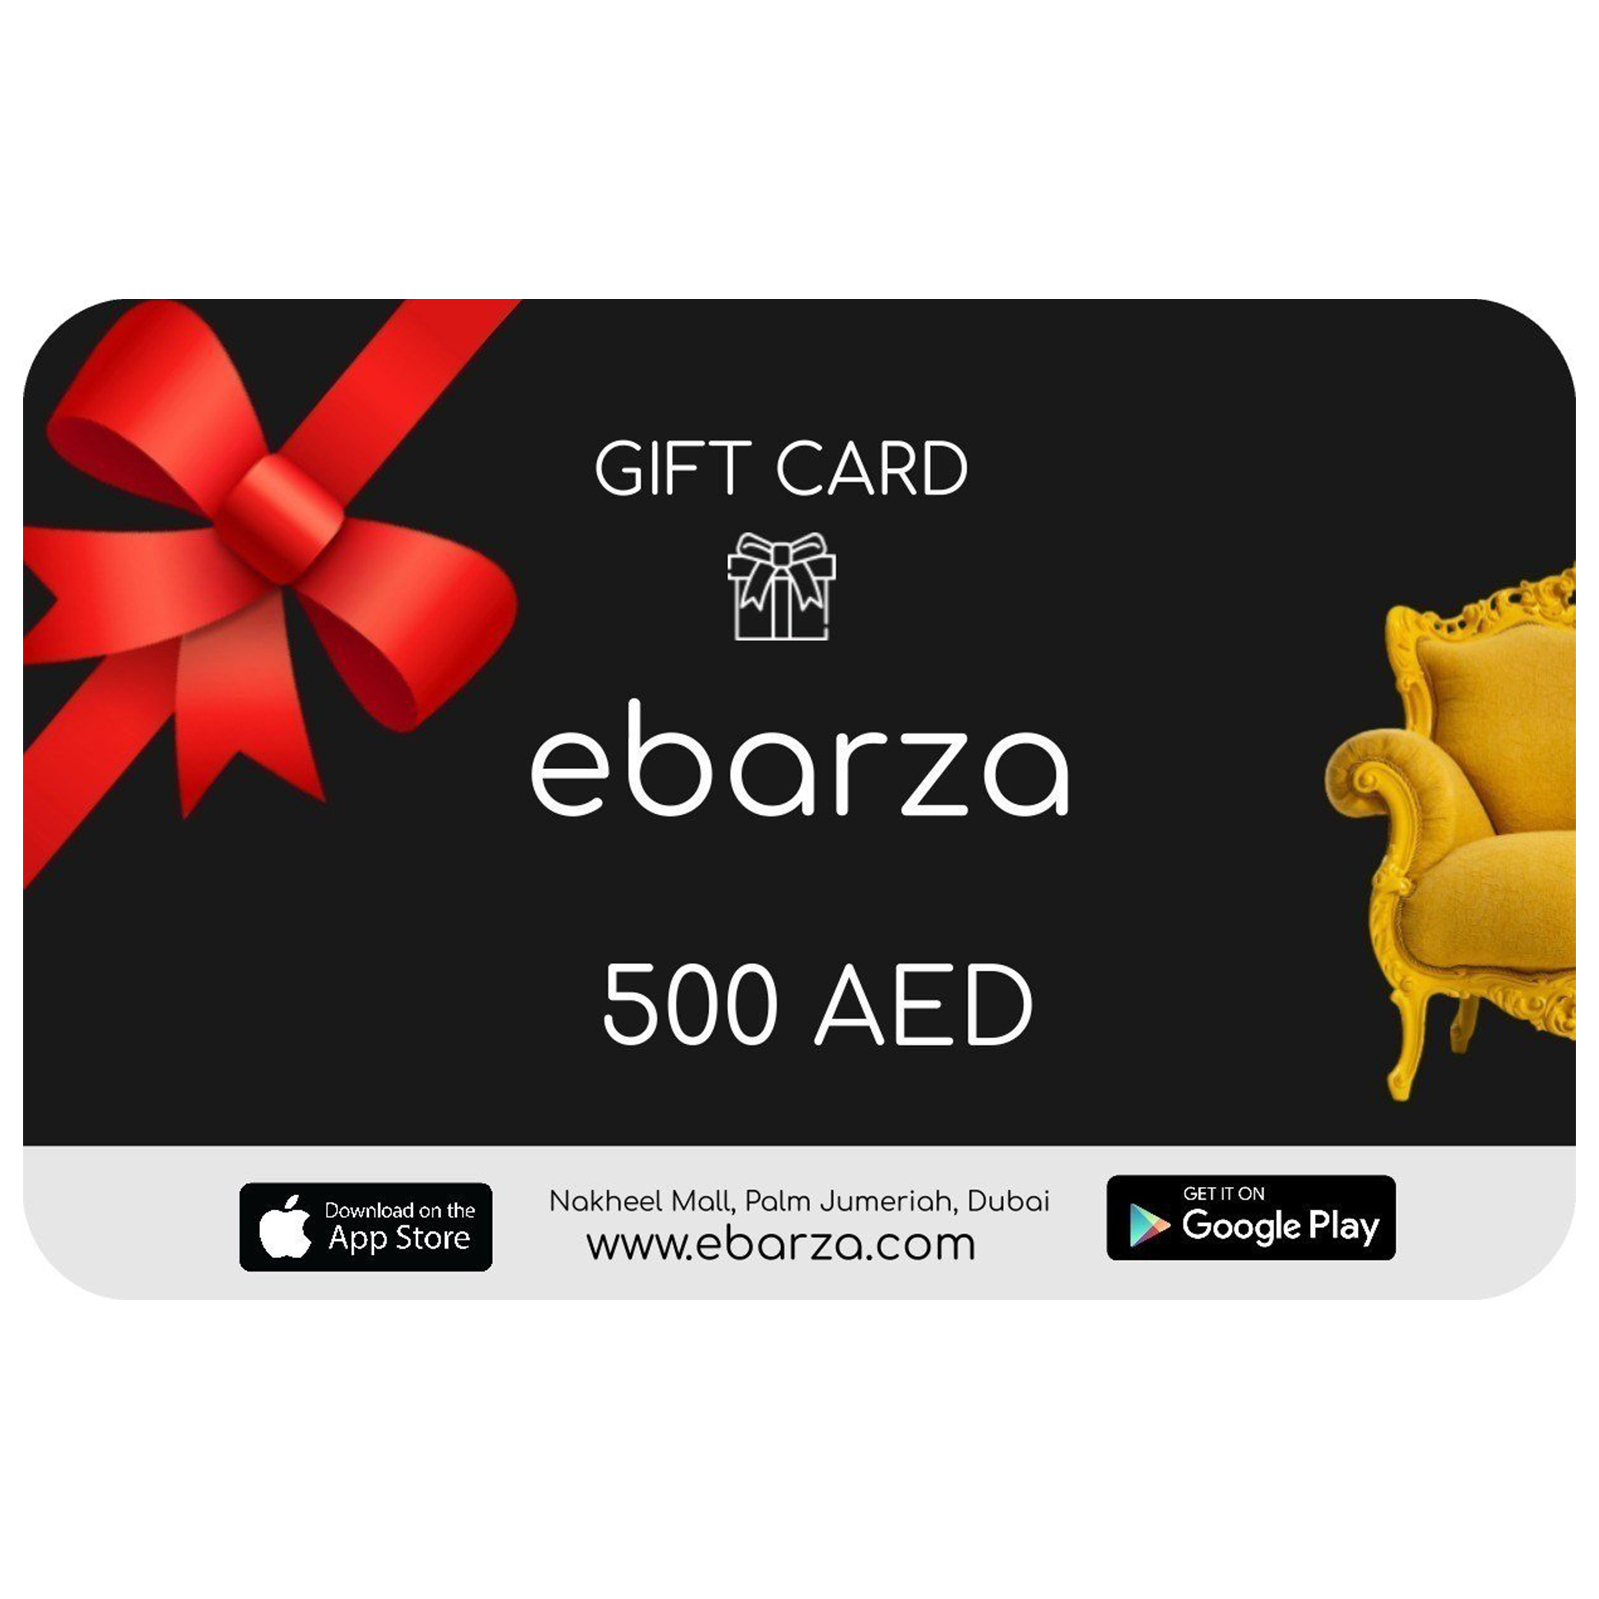 Gift Card -  بطاقه هديه - Shop Online Furniture and Home Decor Store in Dubai, UAE at ebarza